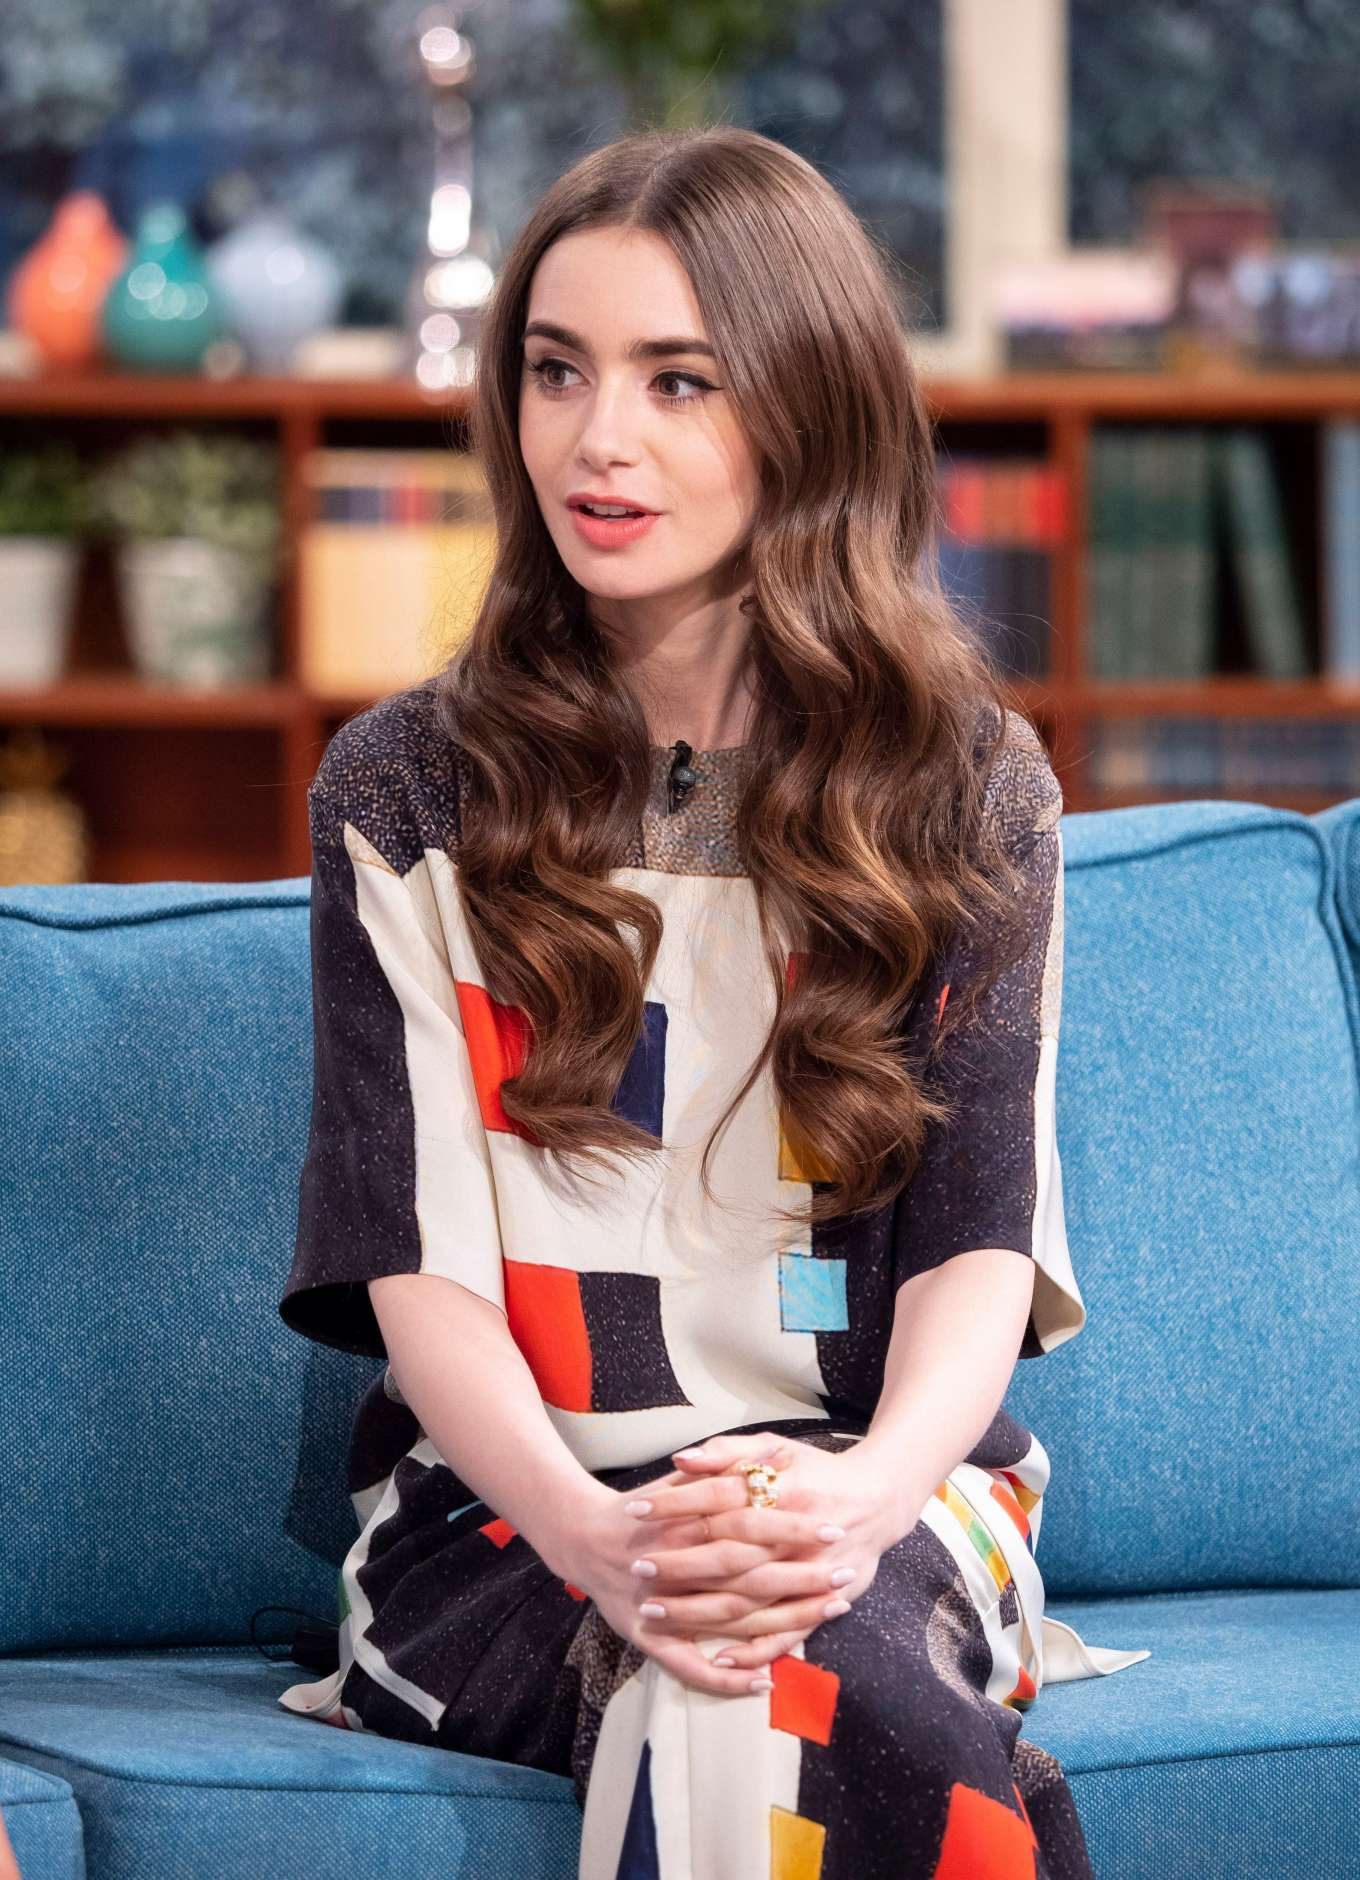 Lily Collins - On This Morning TV Show in London